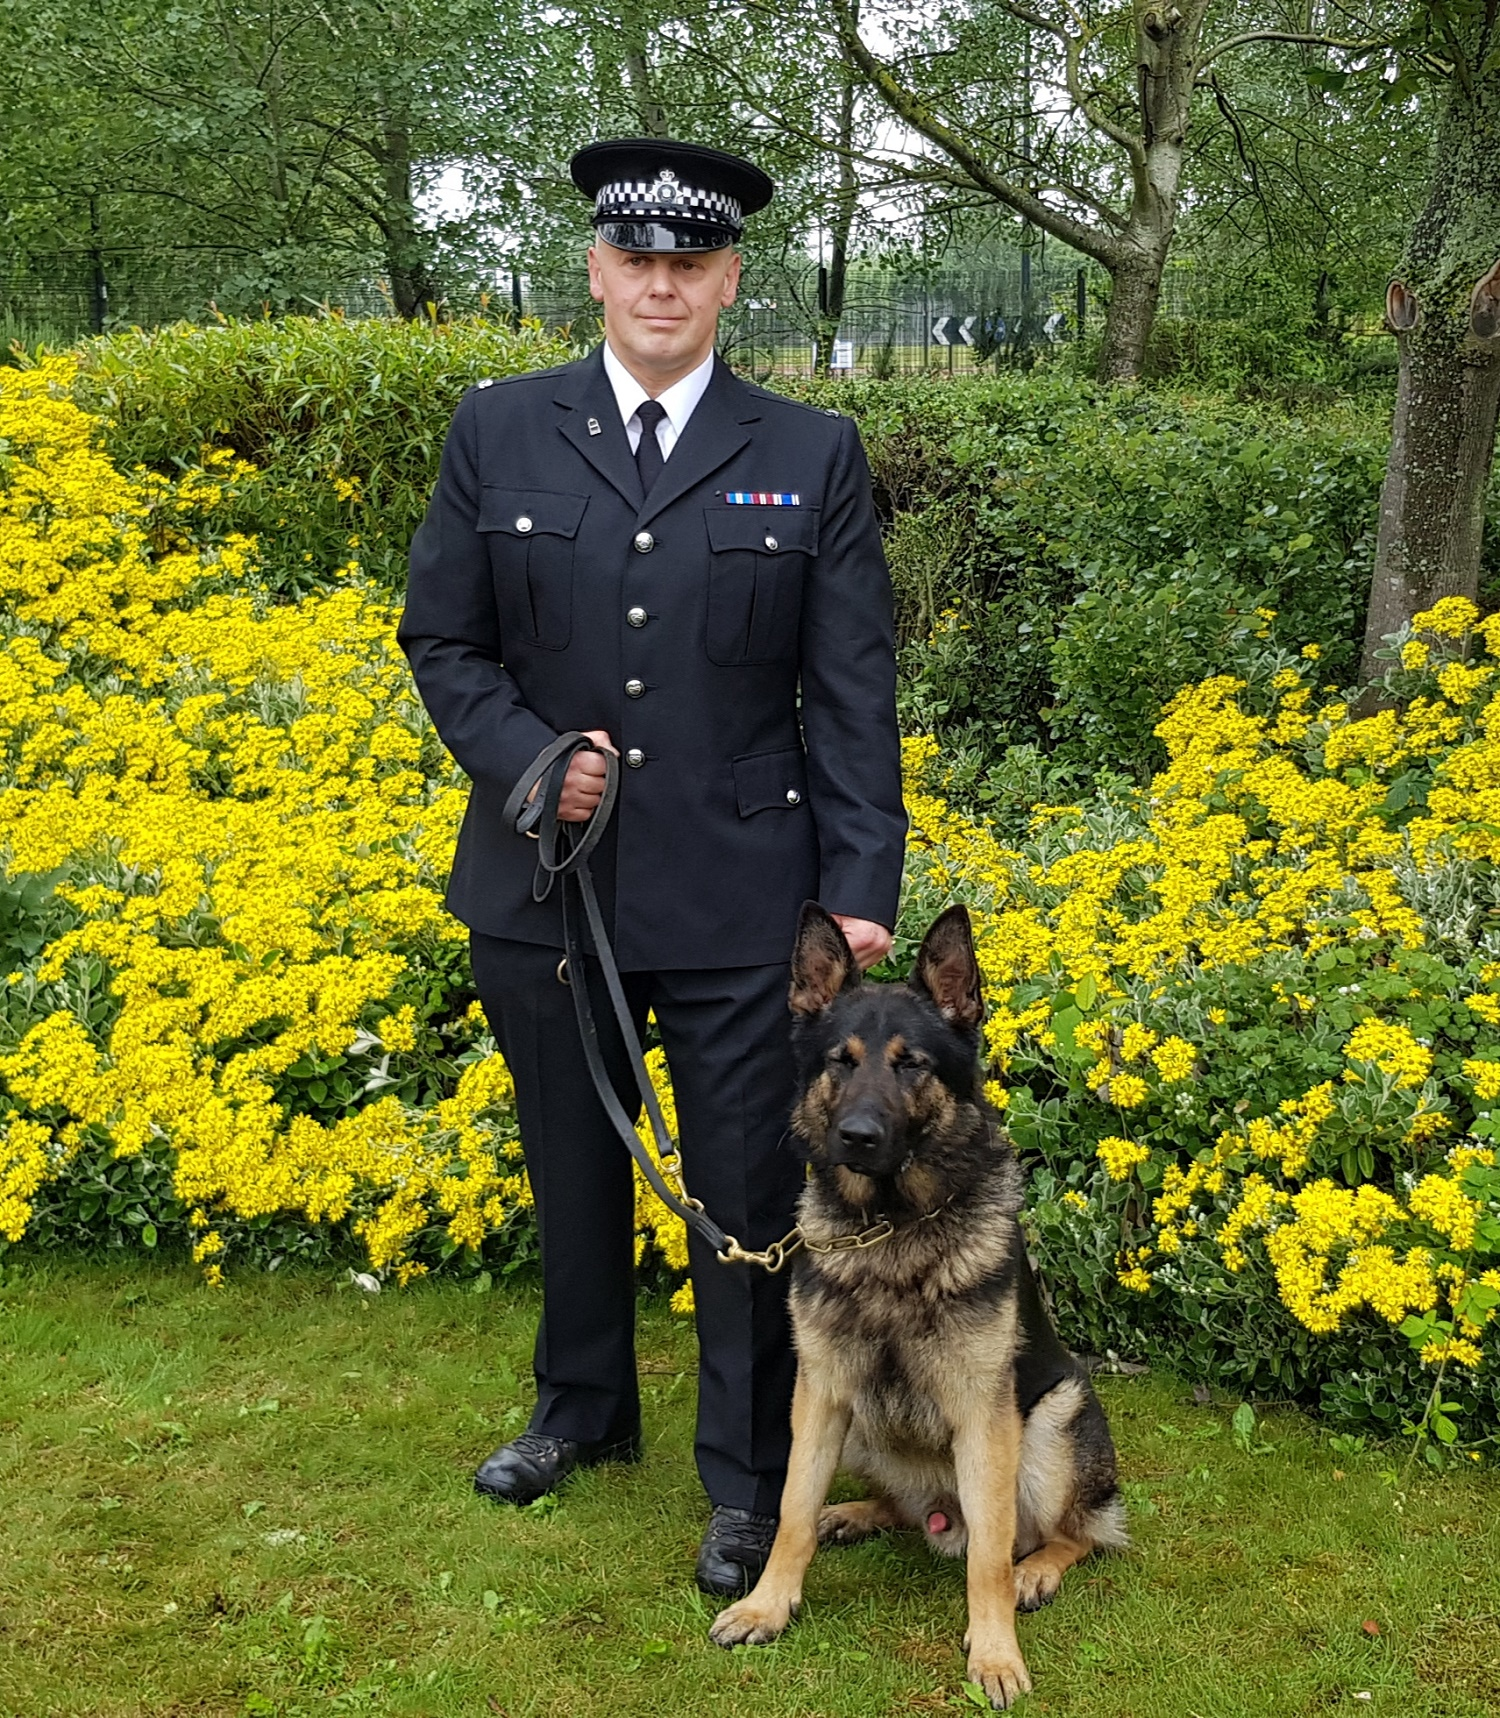 PC Schofield and his dog Bill